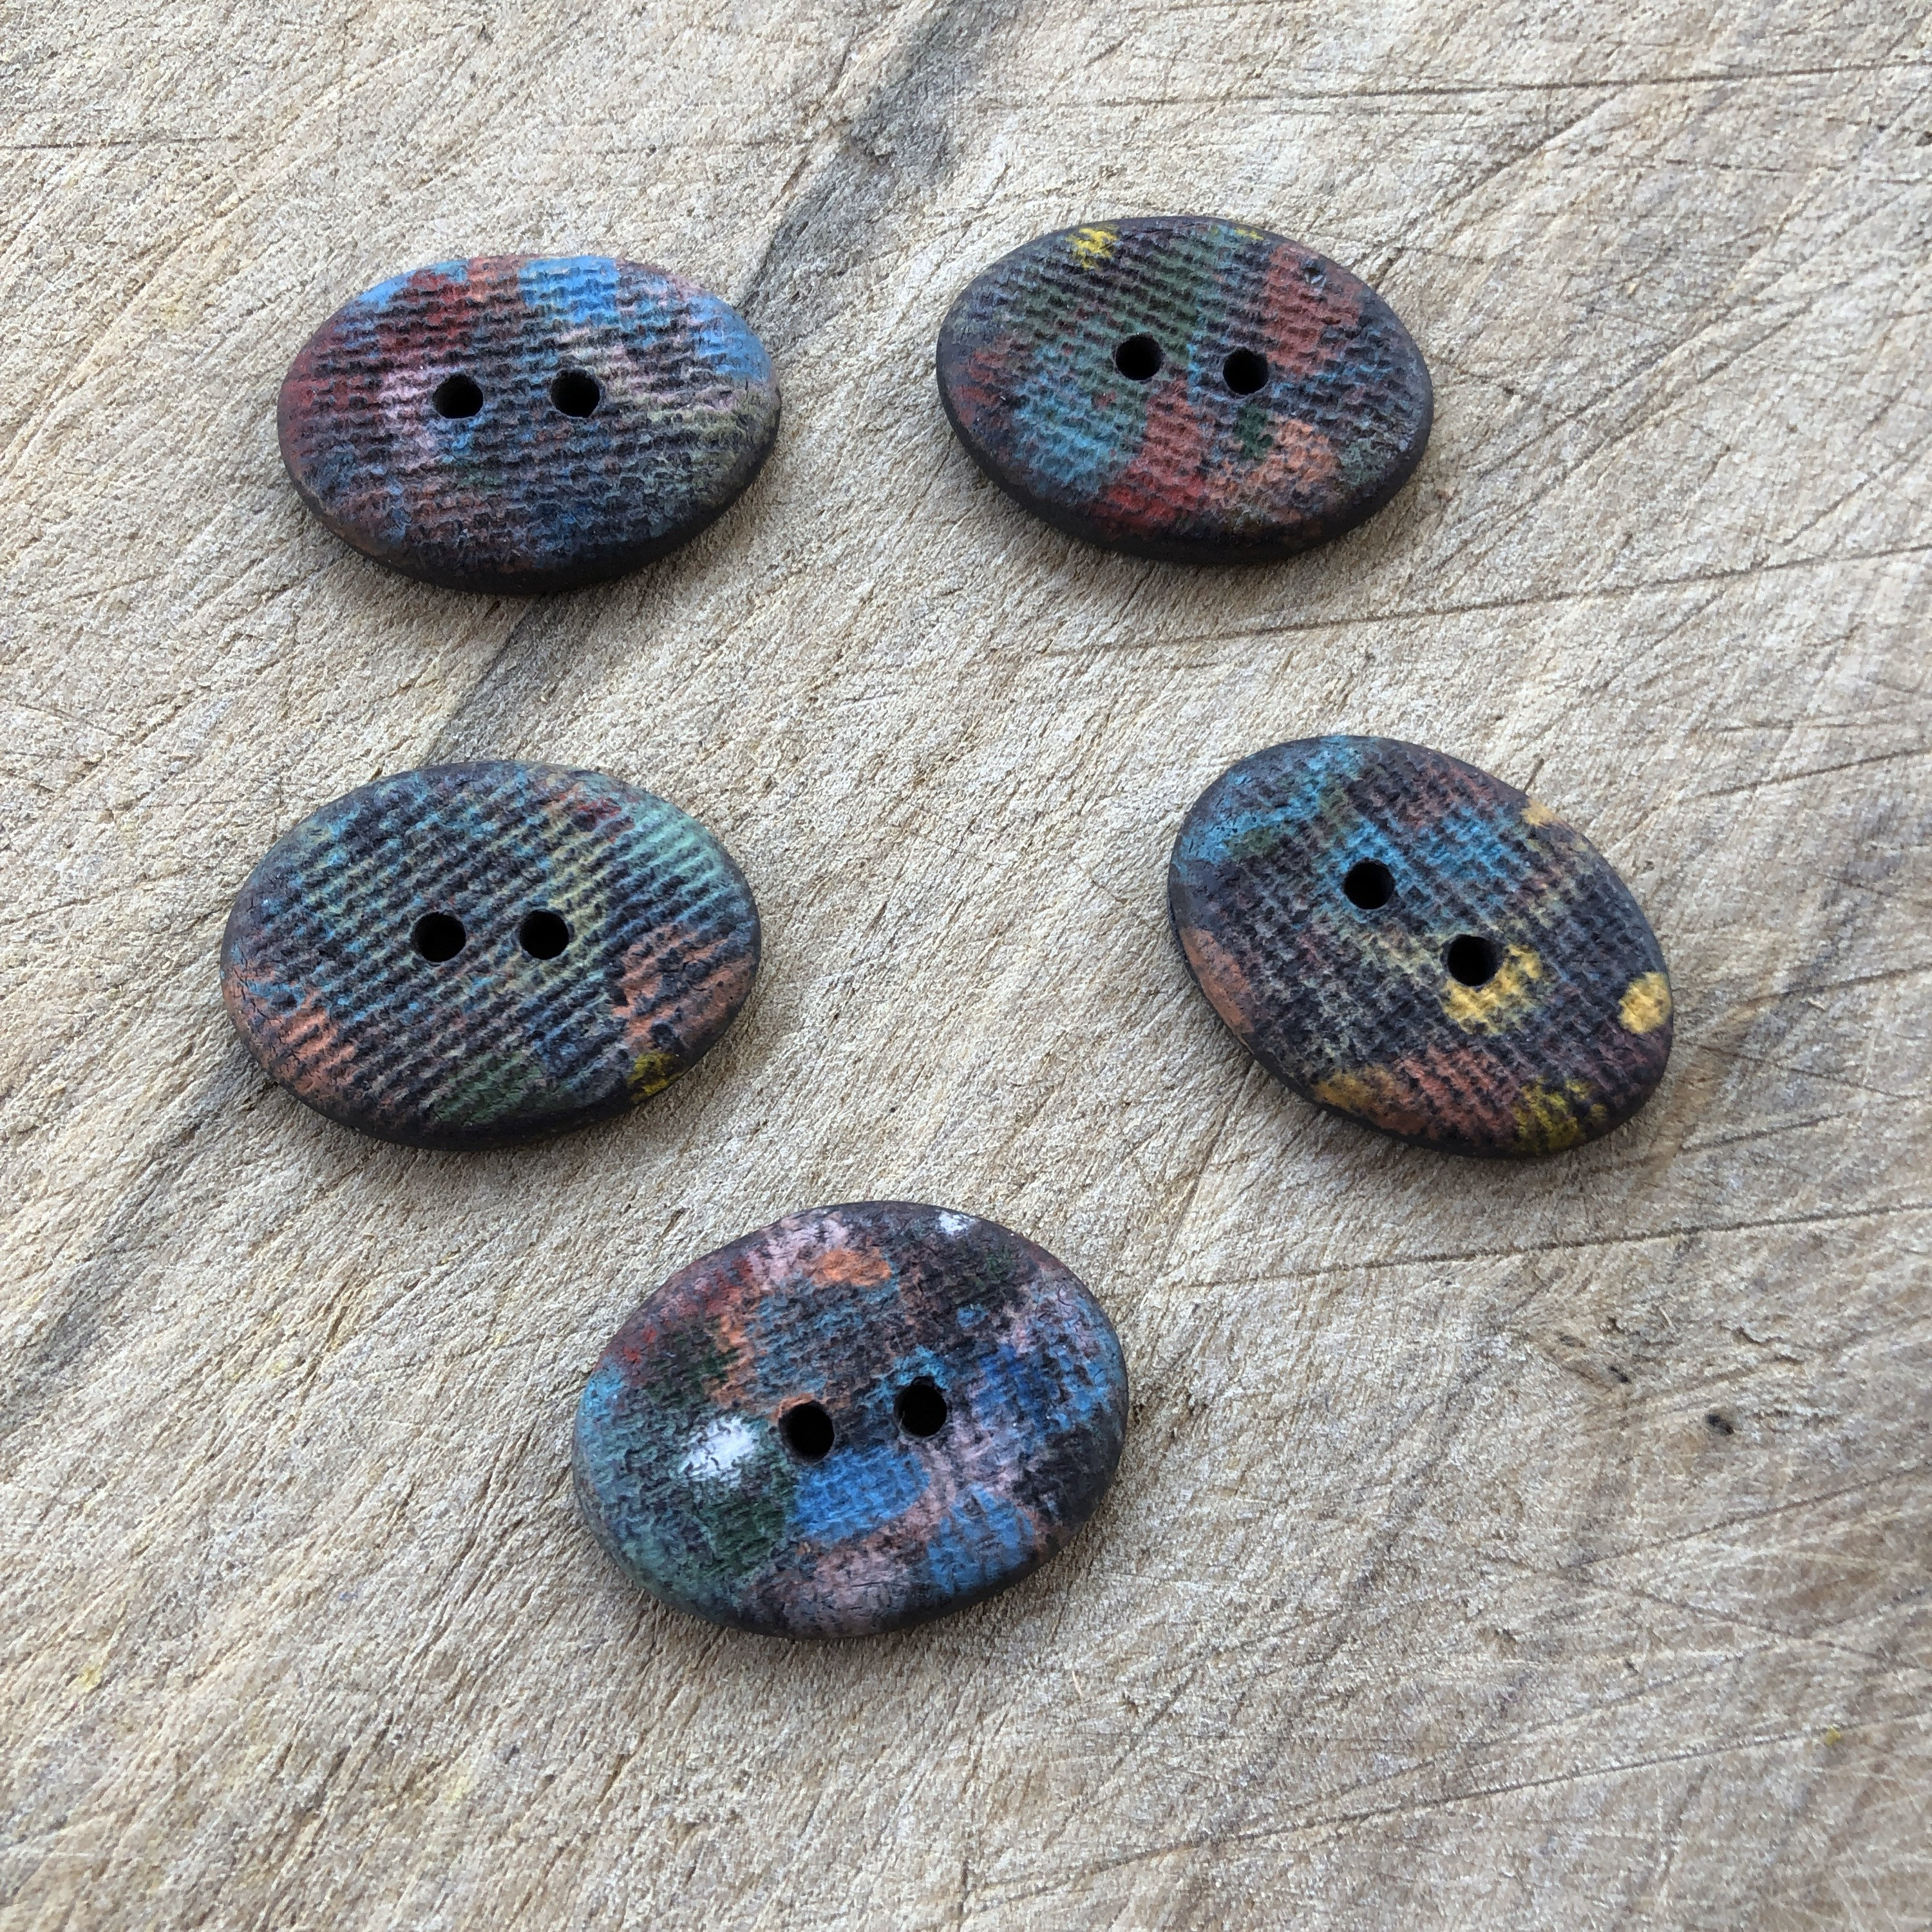 Ceramic Buttons ~ Ceramic Buttons Handmade ~ Buttons for Hats ~ Handmade Buttons ~ Button for Jewelry Making ~ Button for Hair Bows ~ 4007